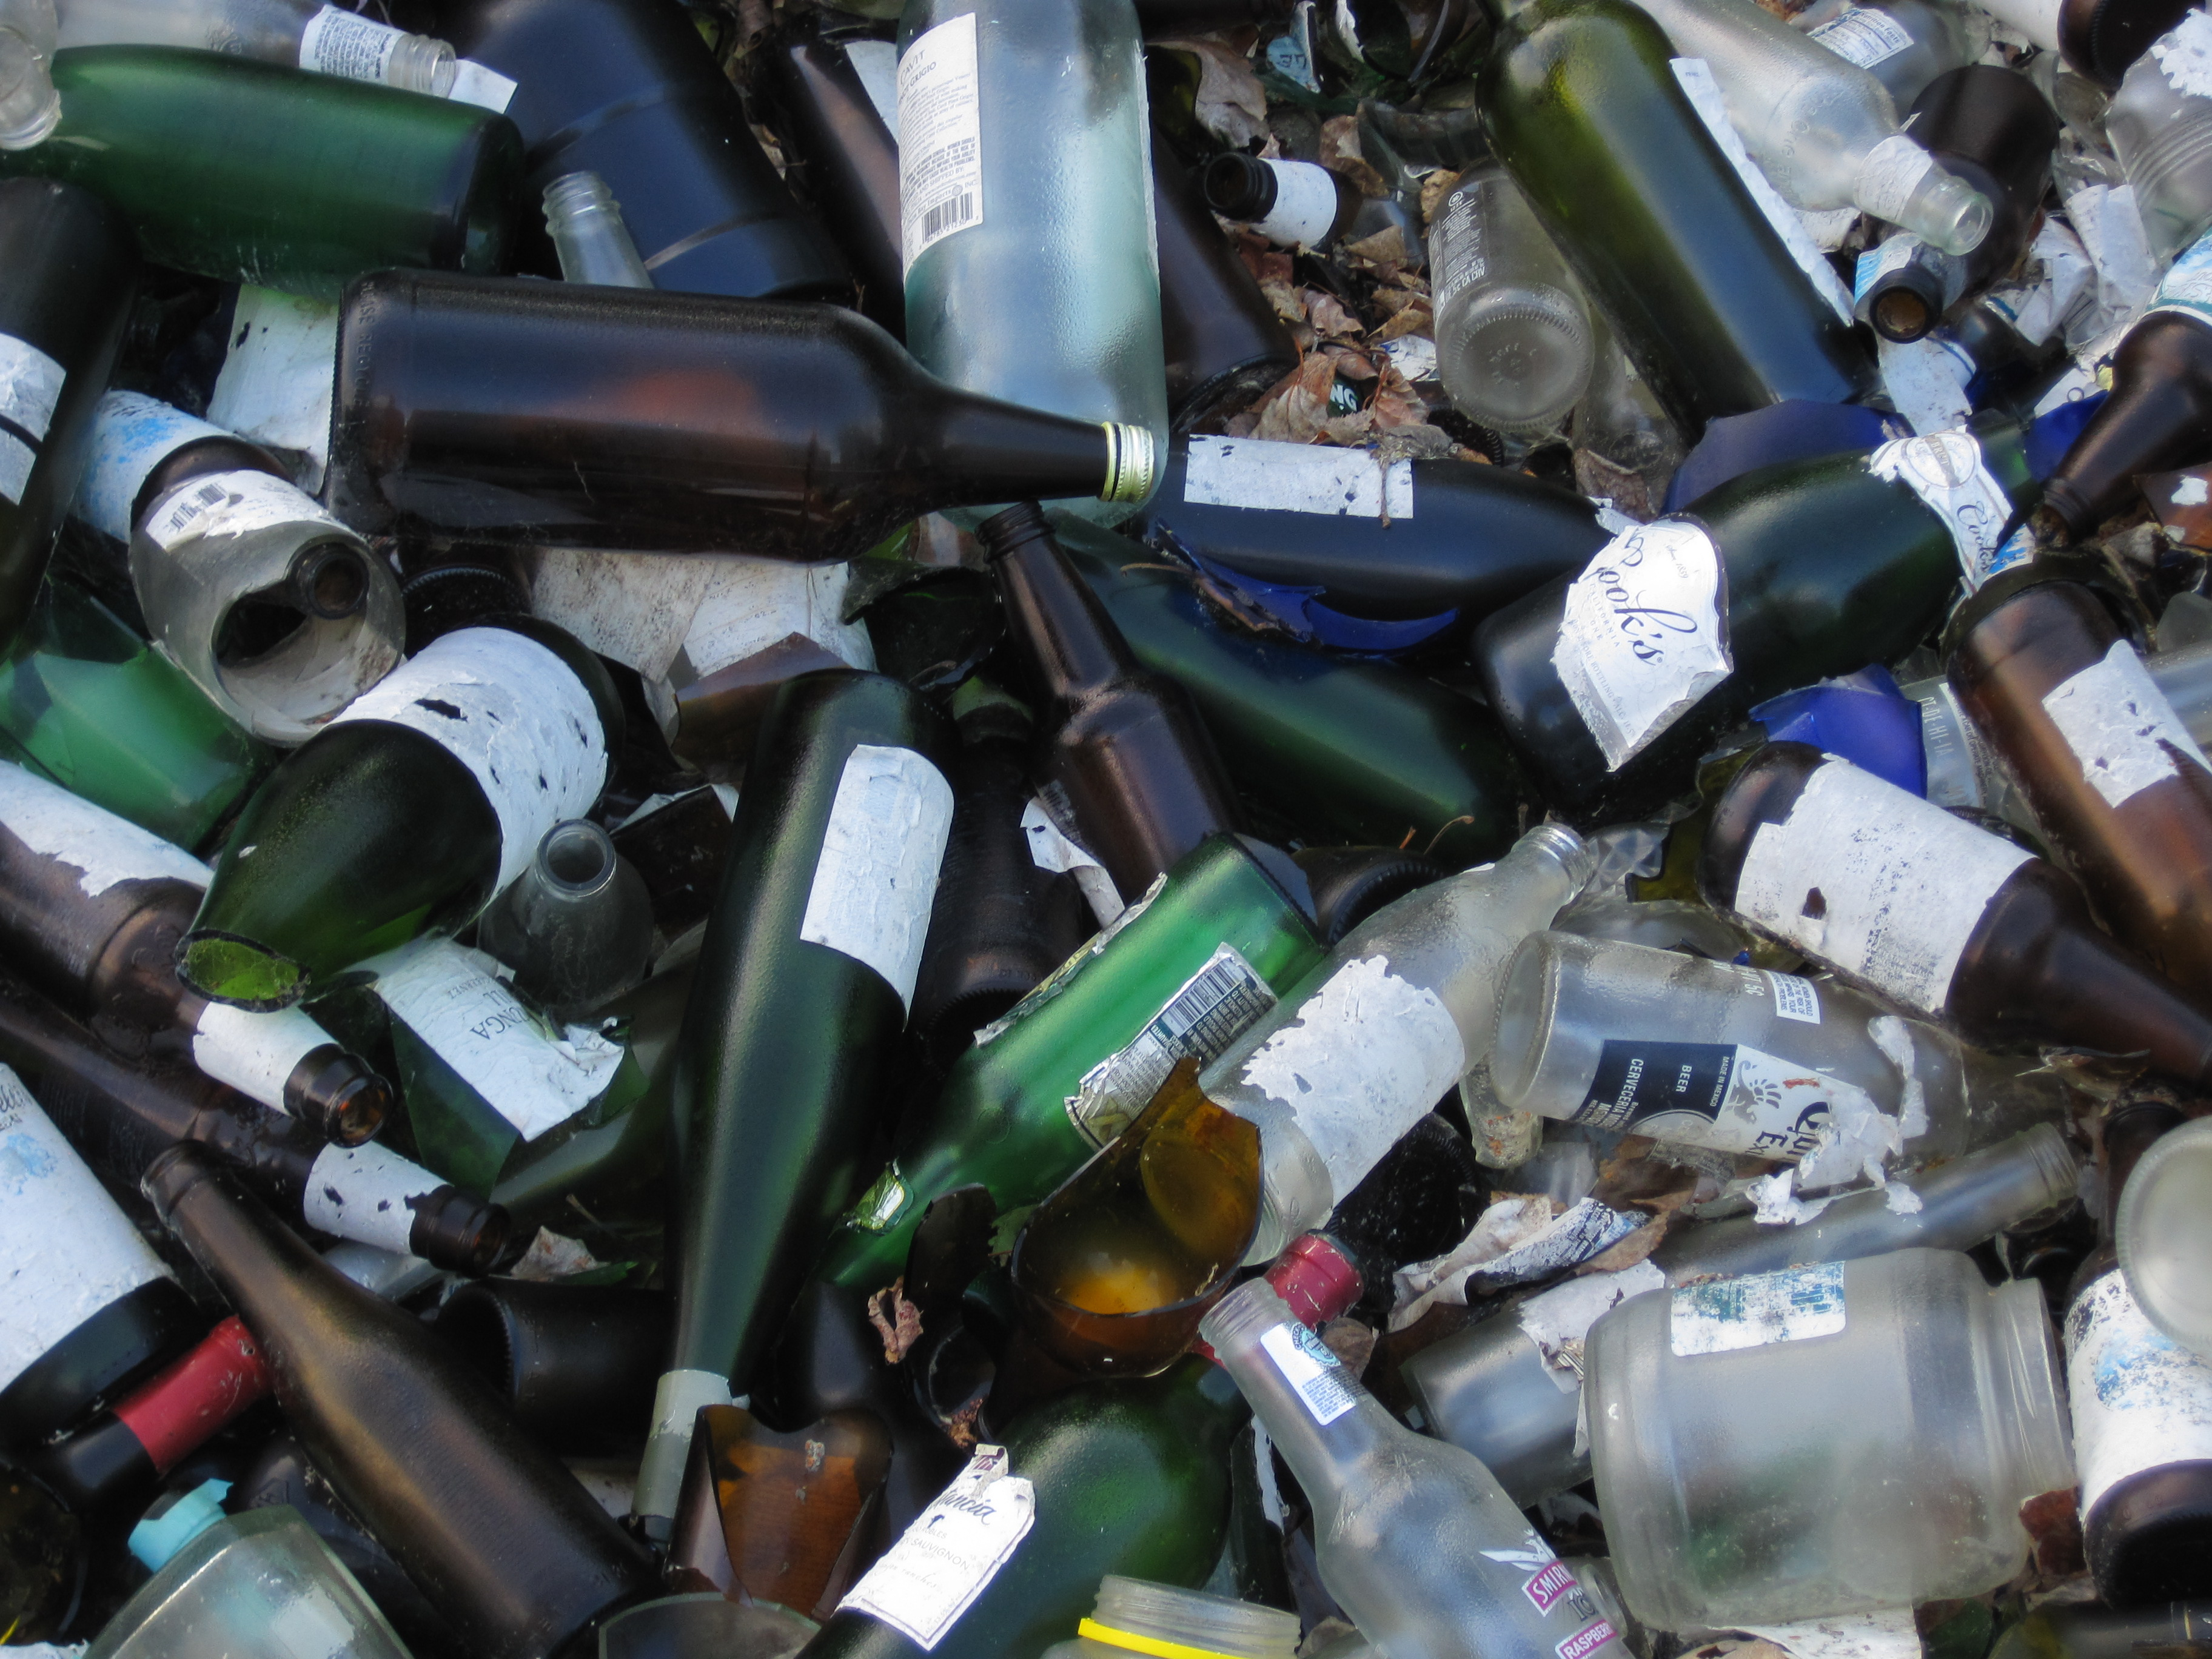 Anchorage Edges Closer to Glass Recycling Solution